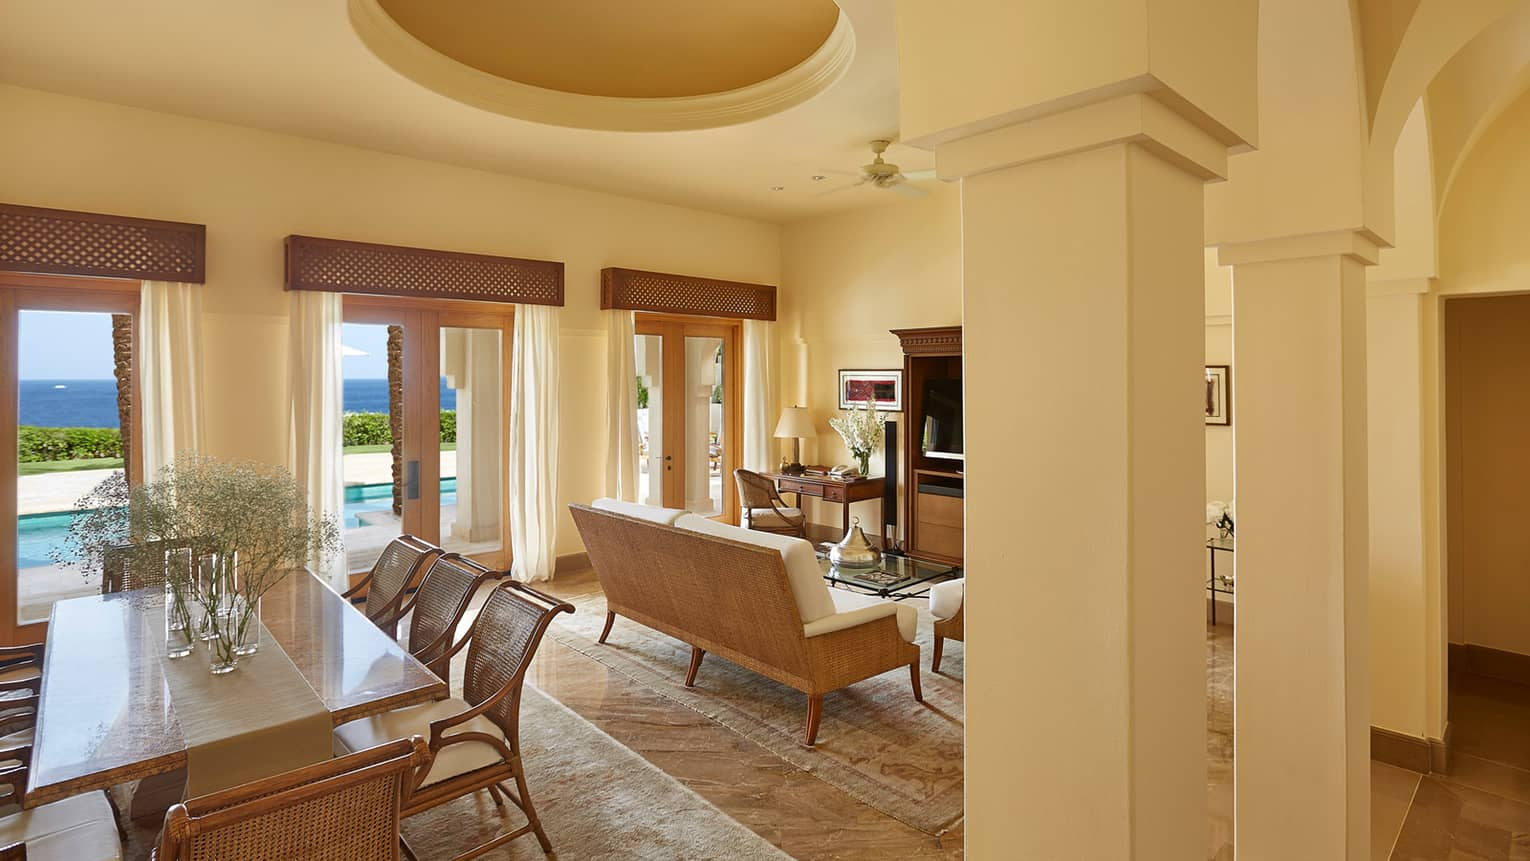 Presidential Suite dining area, living room under white recessed ceiling, pillars, large balcony doors to pool